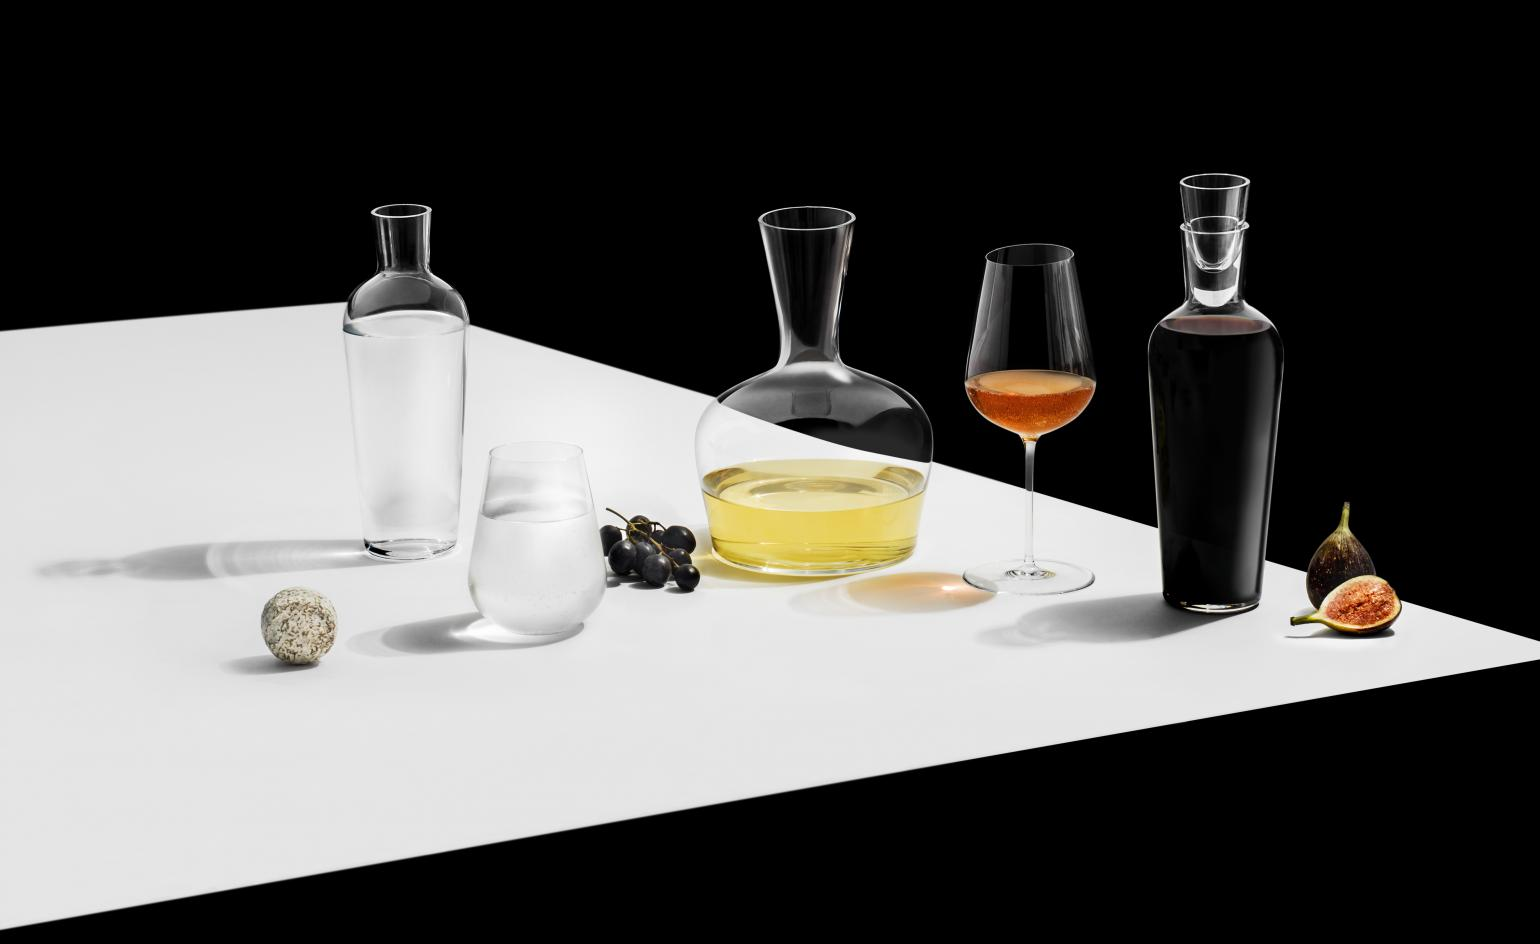 Introducing the only wine glass you'll ever need, designed by the world's best critic